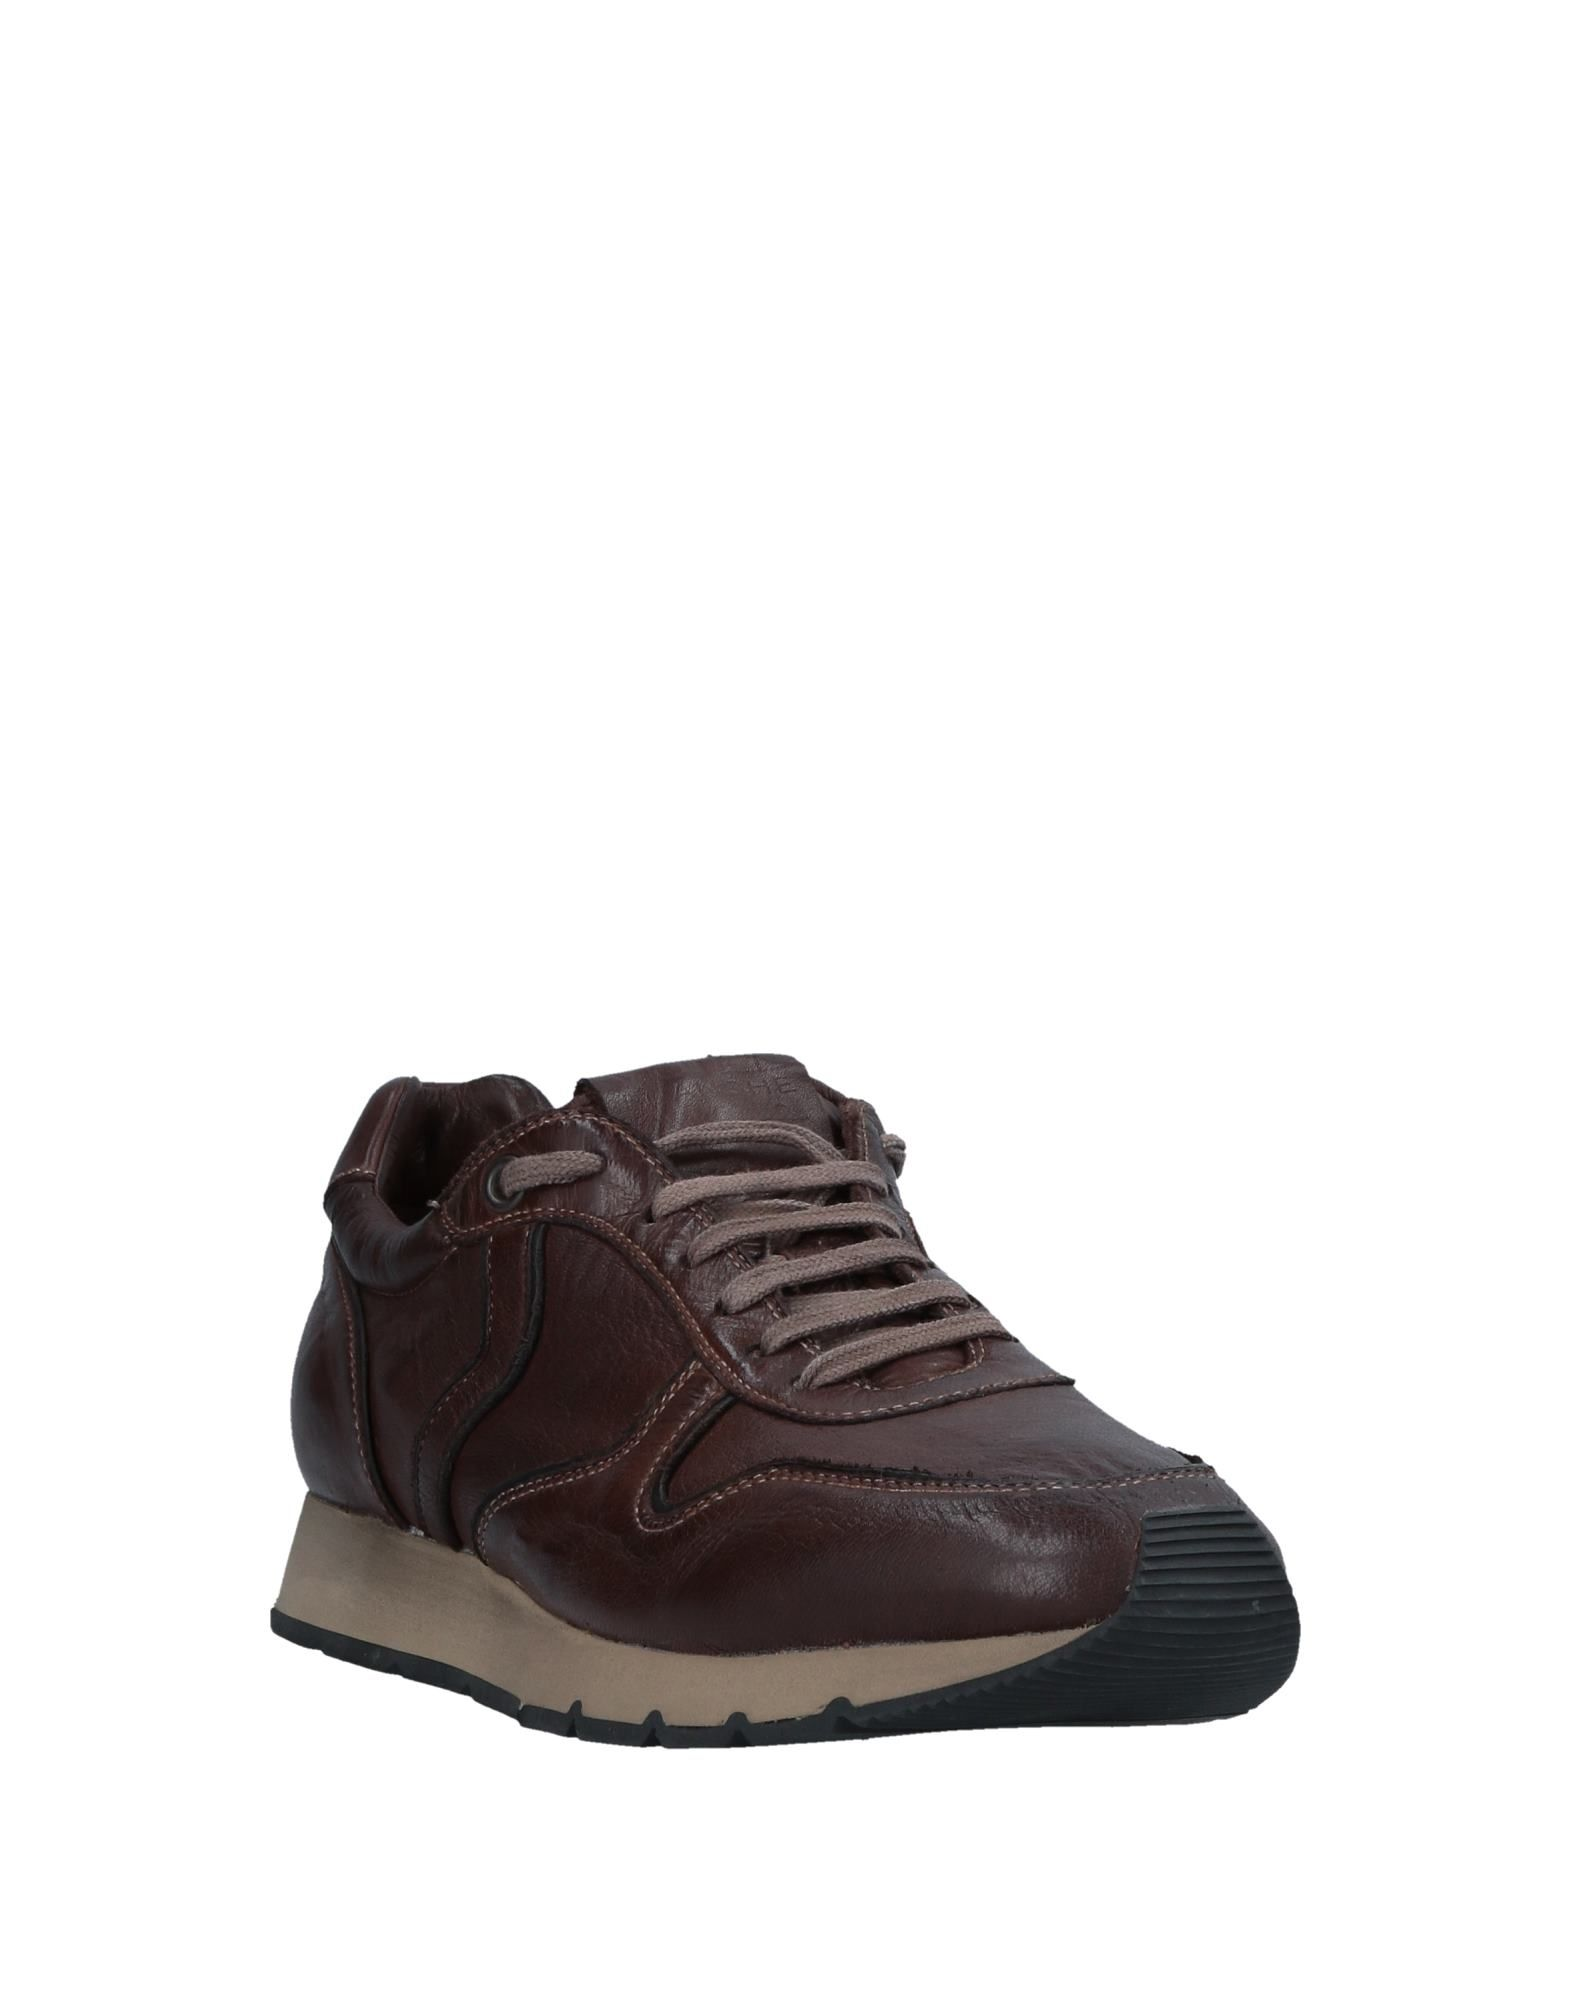 Voile Blanche Sneakers  Herren  Sneakers 11527681BV e941a0